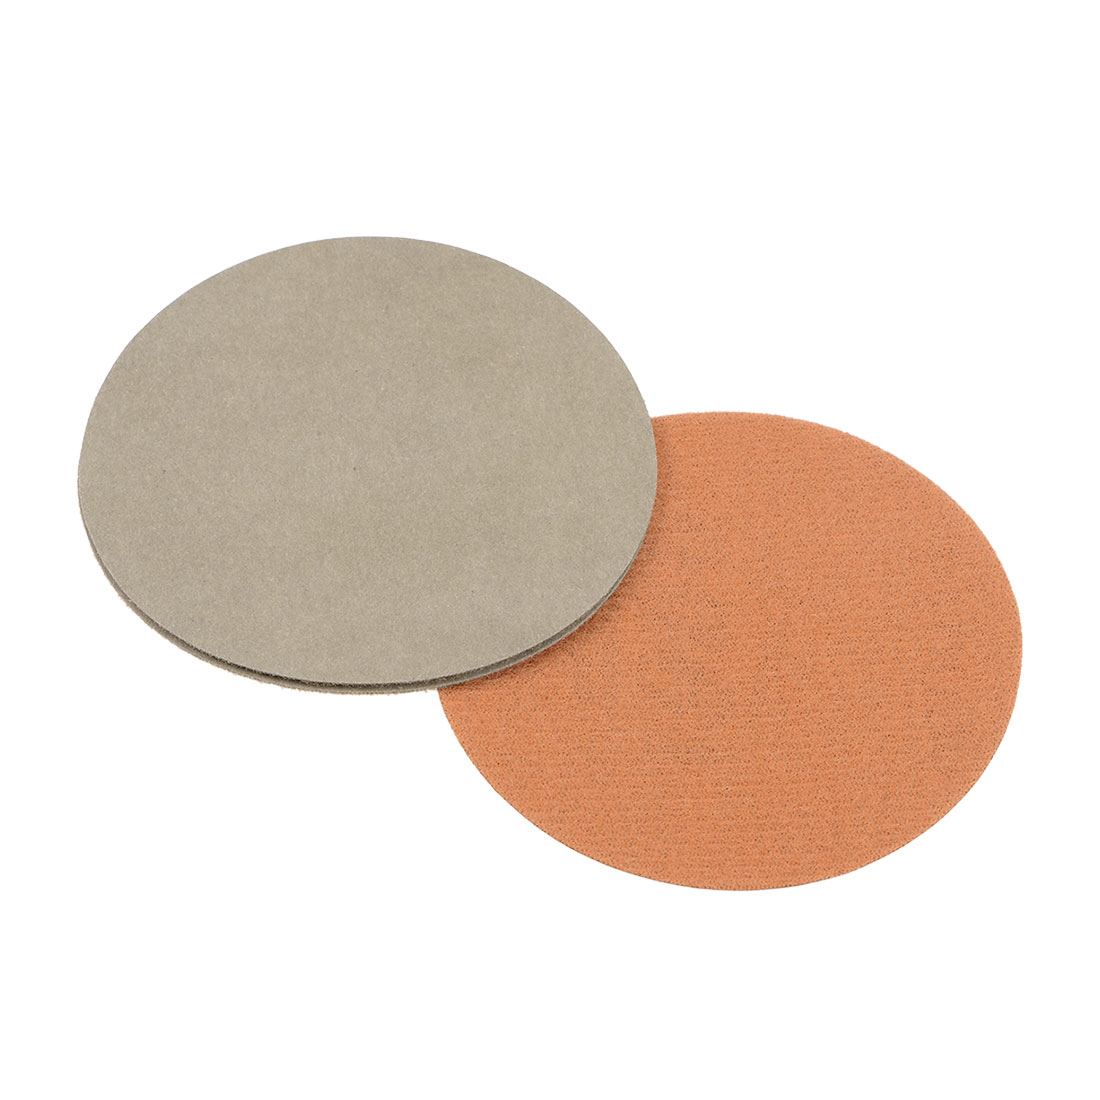 3 inch Wet Dry Discs 10000 Grit Hook and Loop Sanding Disc Silicon Carbide 3pcs